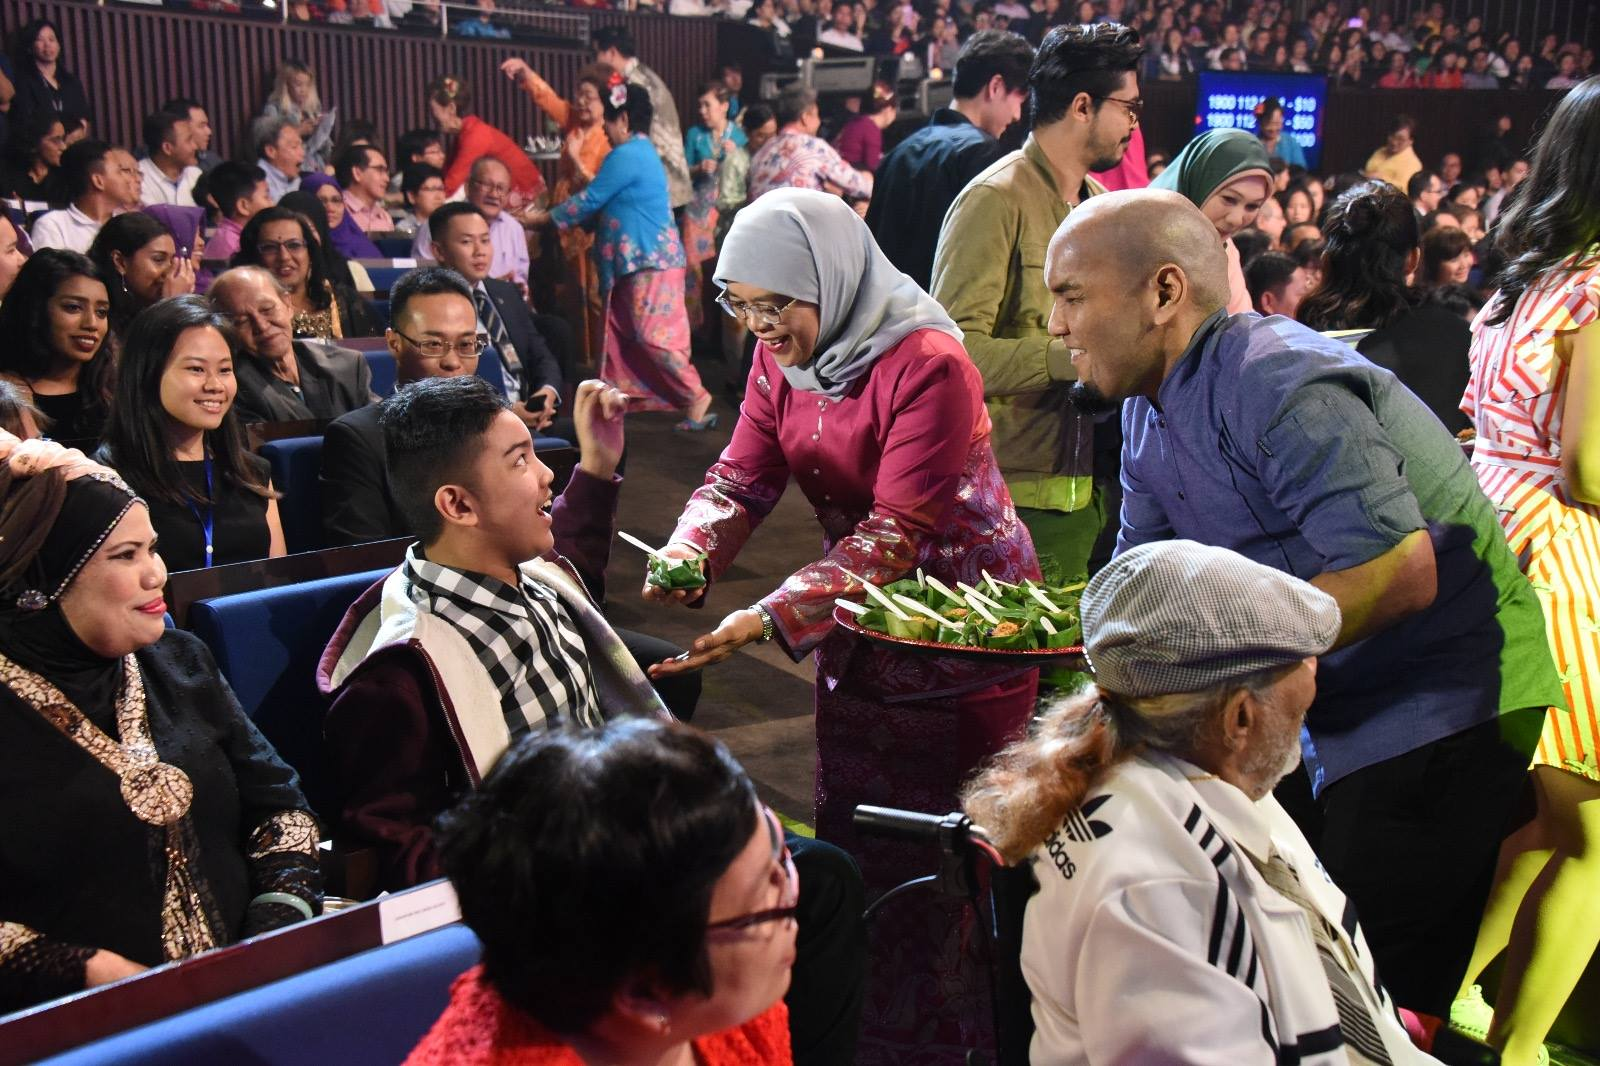 President Halimah Yacob distributing Pulut Inti (a traditional Peranakan dish)to the audience before the show.